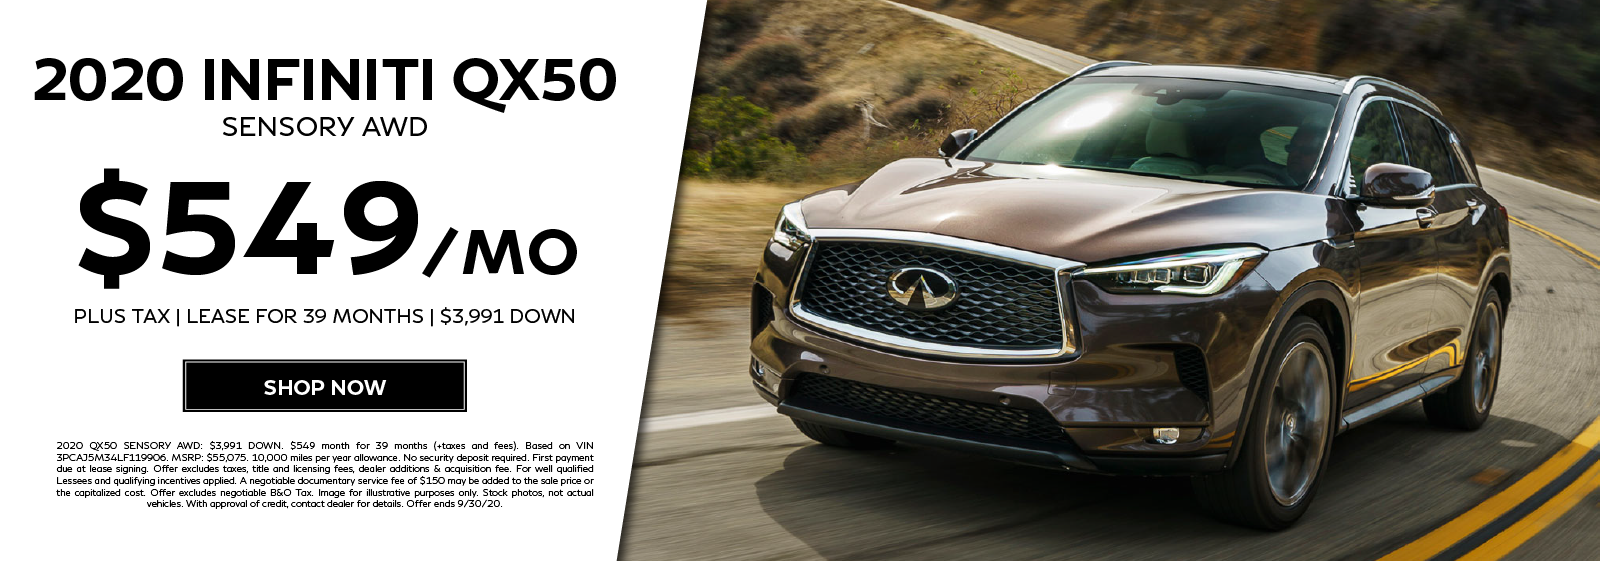 Lease a 2020 QX50 SENSORY AWD for $549 per month for 39 months. Click to shop now.